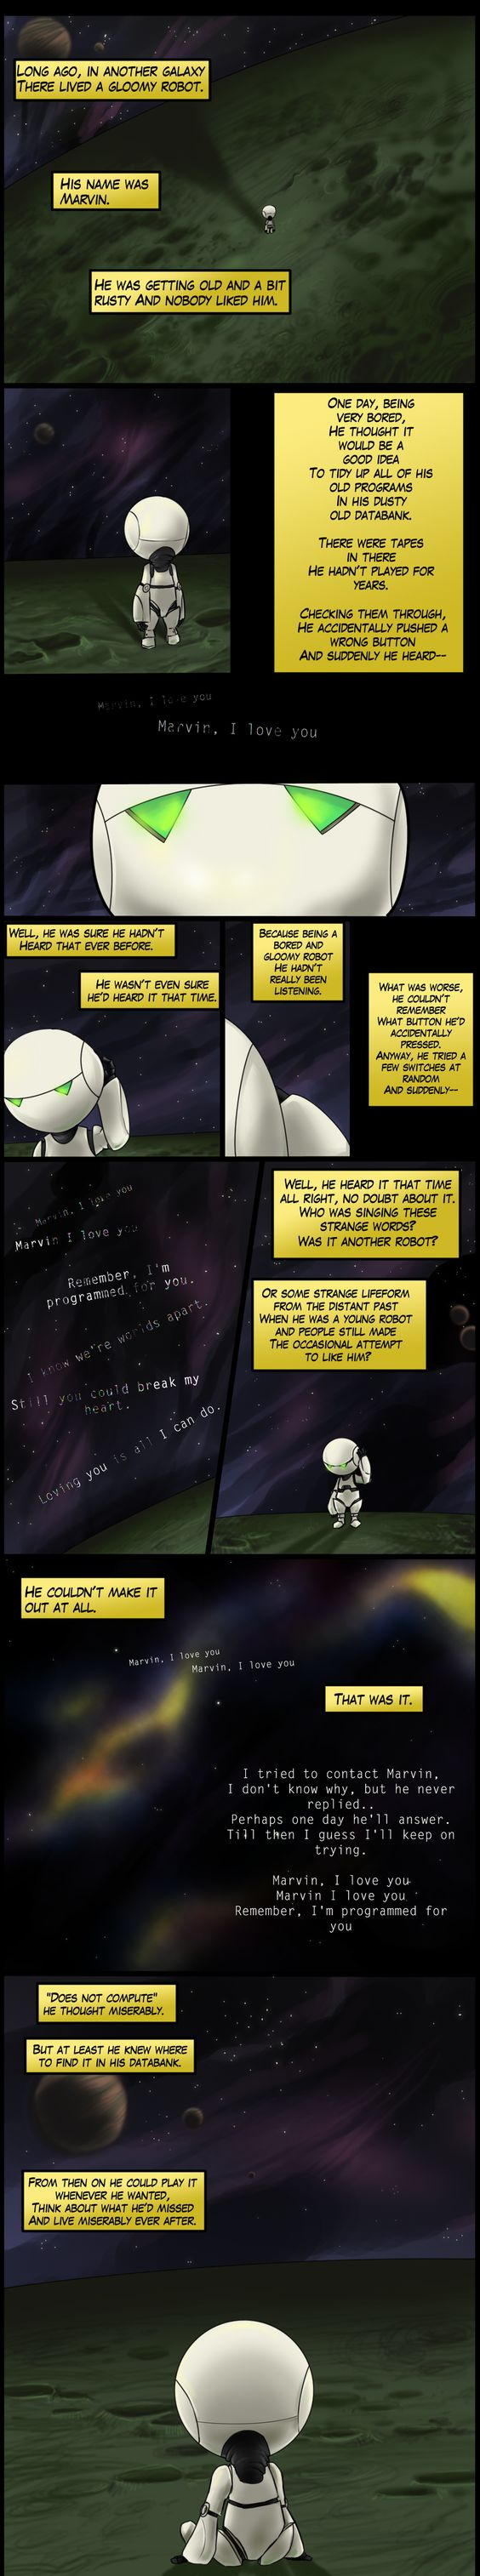 Marvin the Paranoid Android from The Hitchhiker's Guide to the Galaxy by erupan